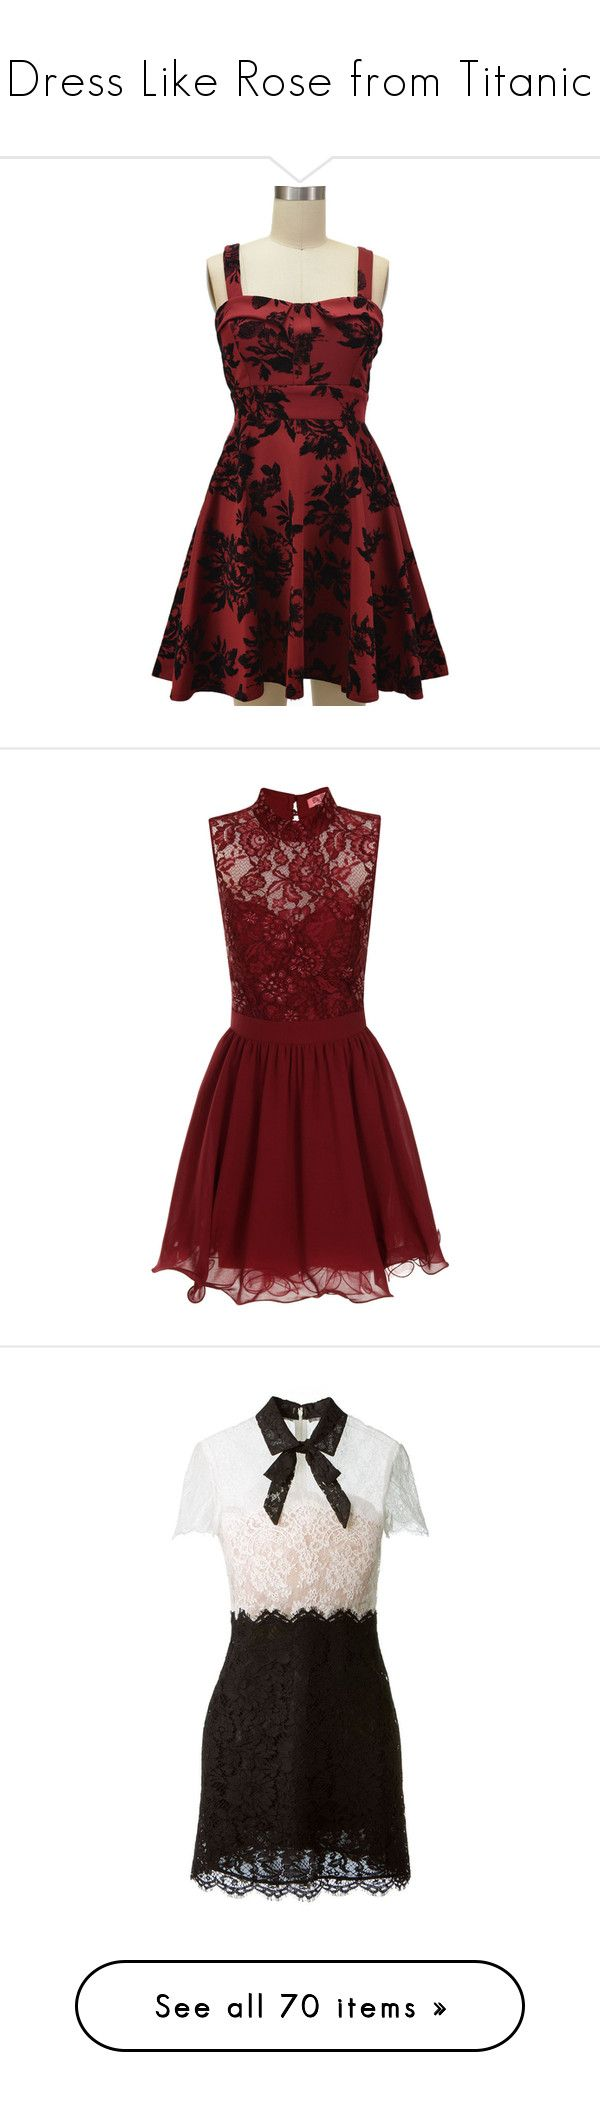 """Dress Like Rose from Titanic"" by sophialovescoffee ❤ liked on Polyvore featuring dresses, red, vestidos, red dress, red strap dress, garnet dress, red sweetheart dress, red sweetheart cocktail dress, bow dress and short dresses"